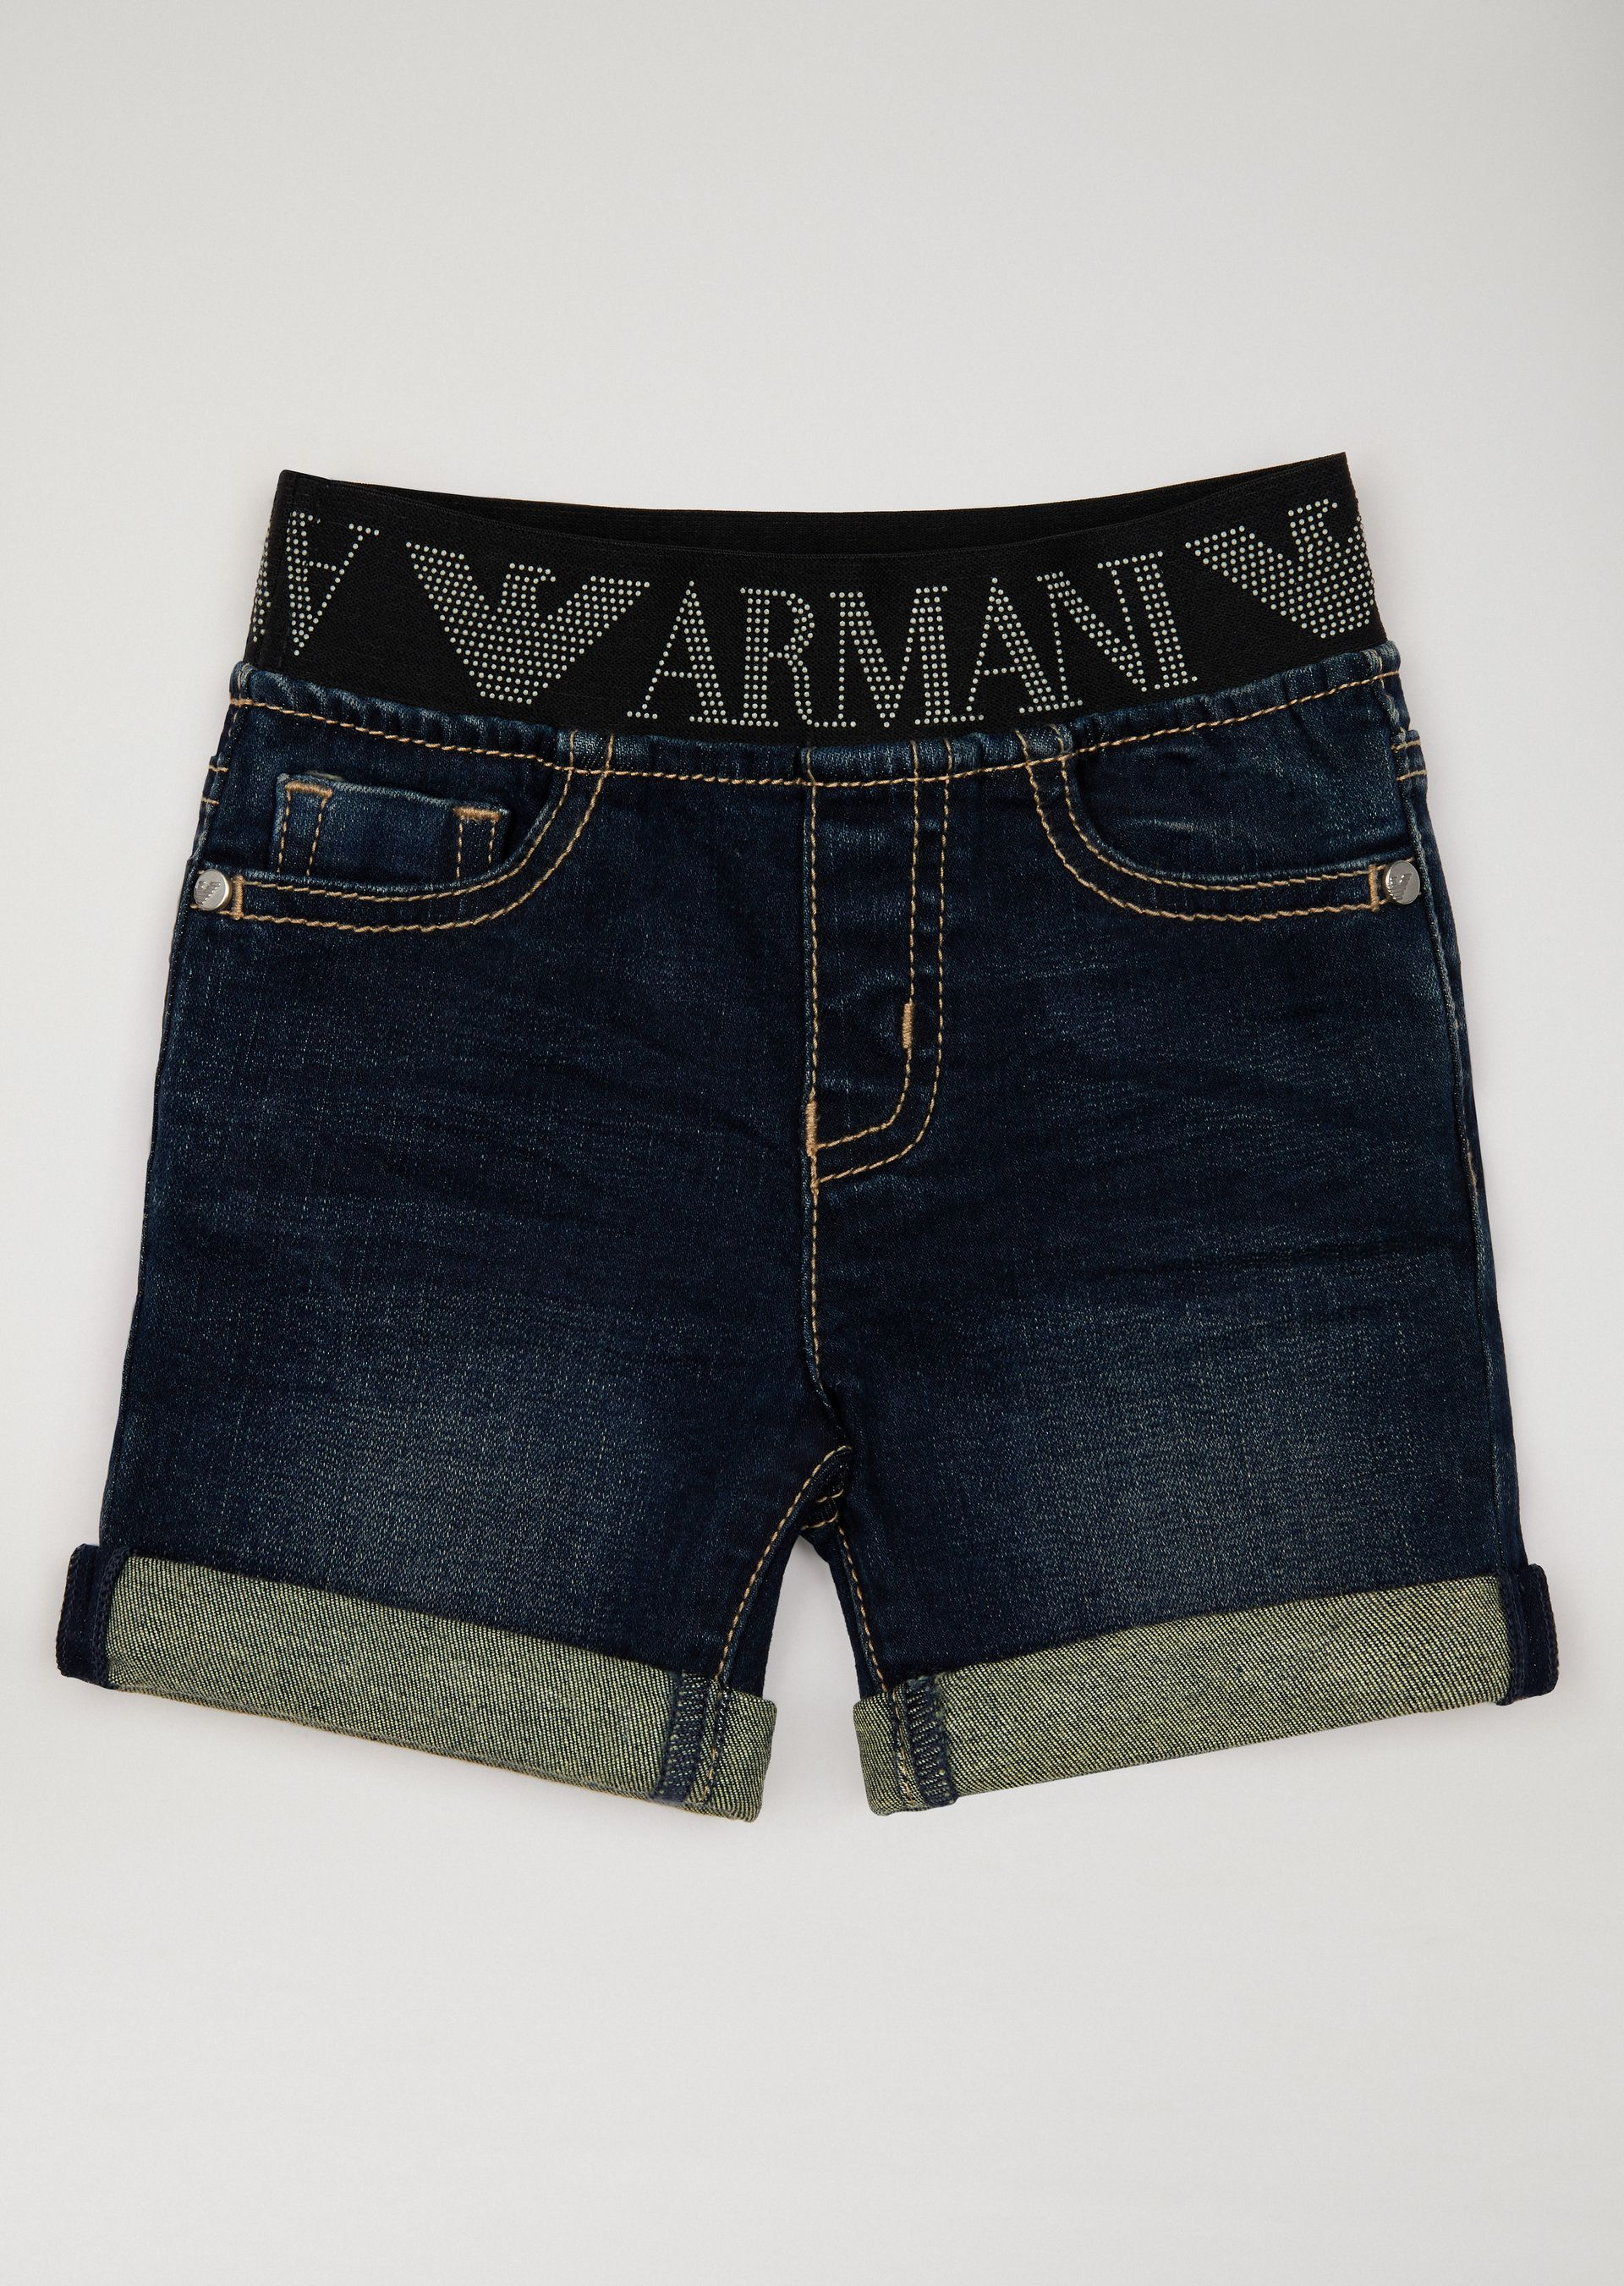 OFFICIAL STORE EMPORIO ARMANI - Pantalons - Shorts on armani.com